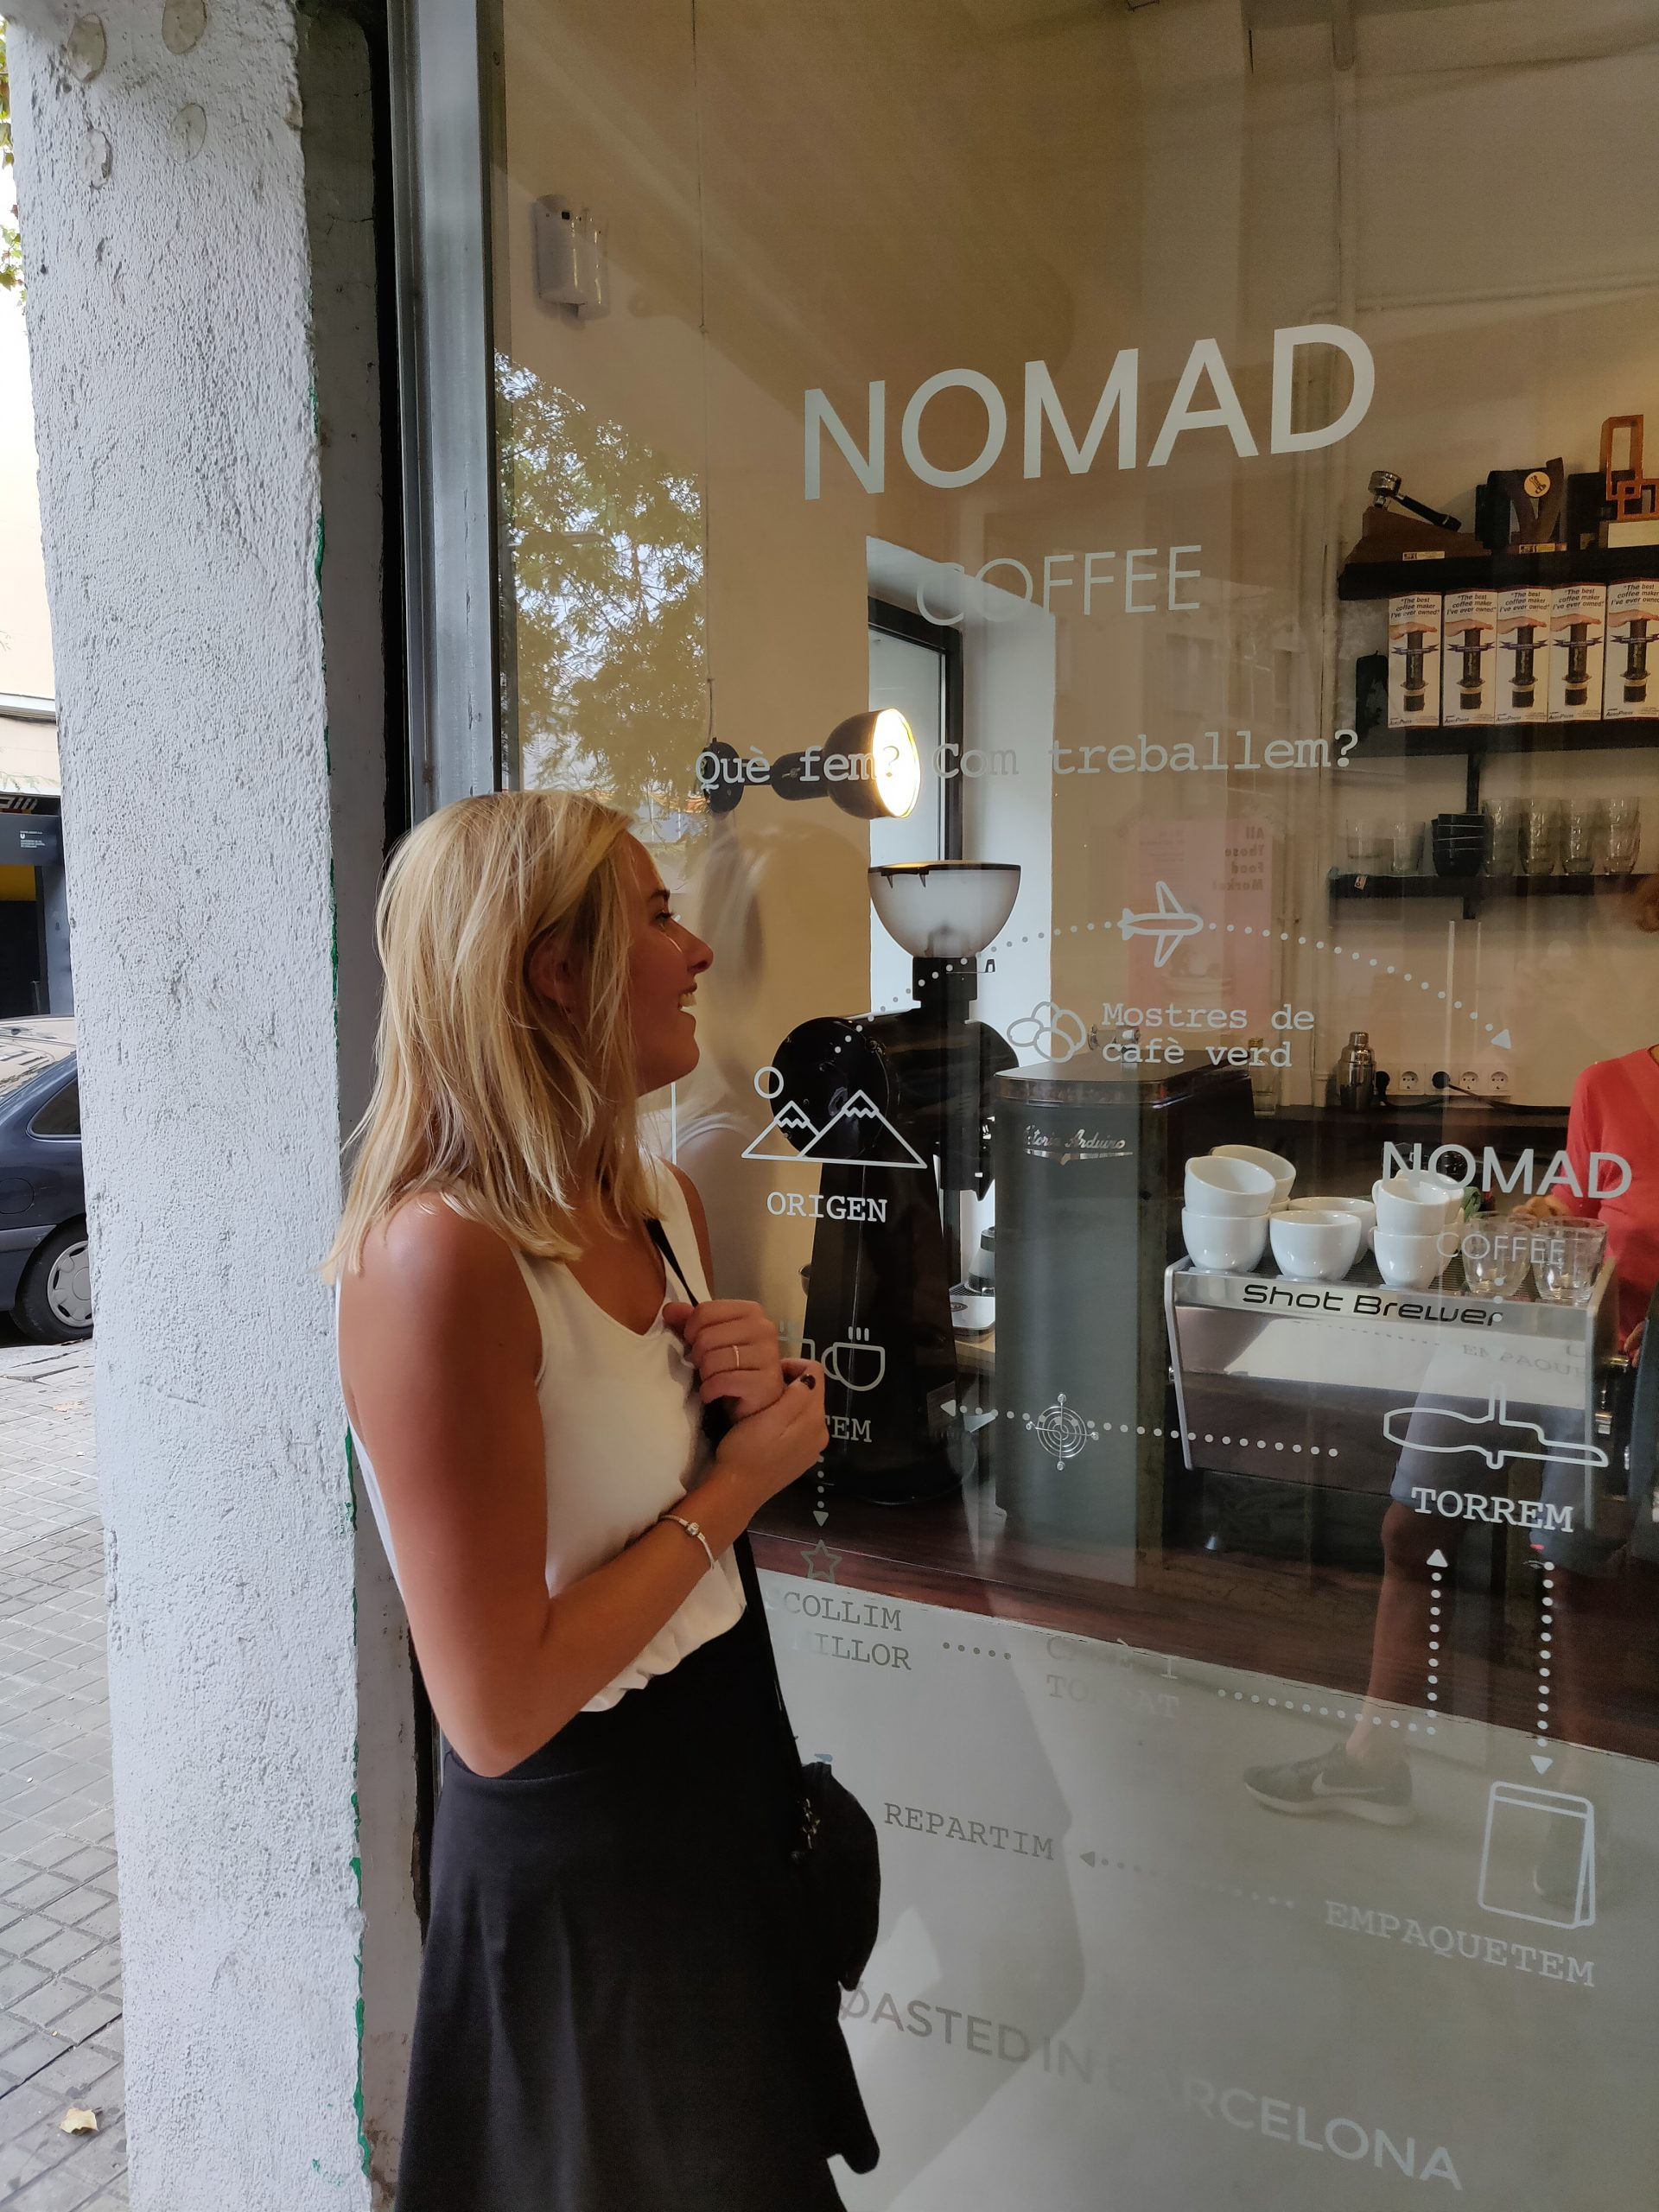 Nømad Roaster's Home in Barcelona